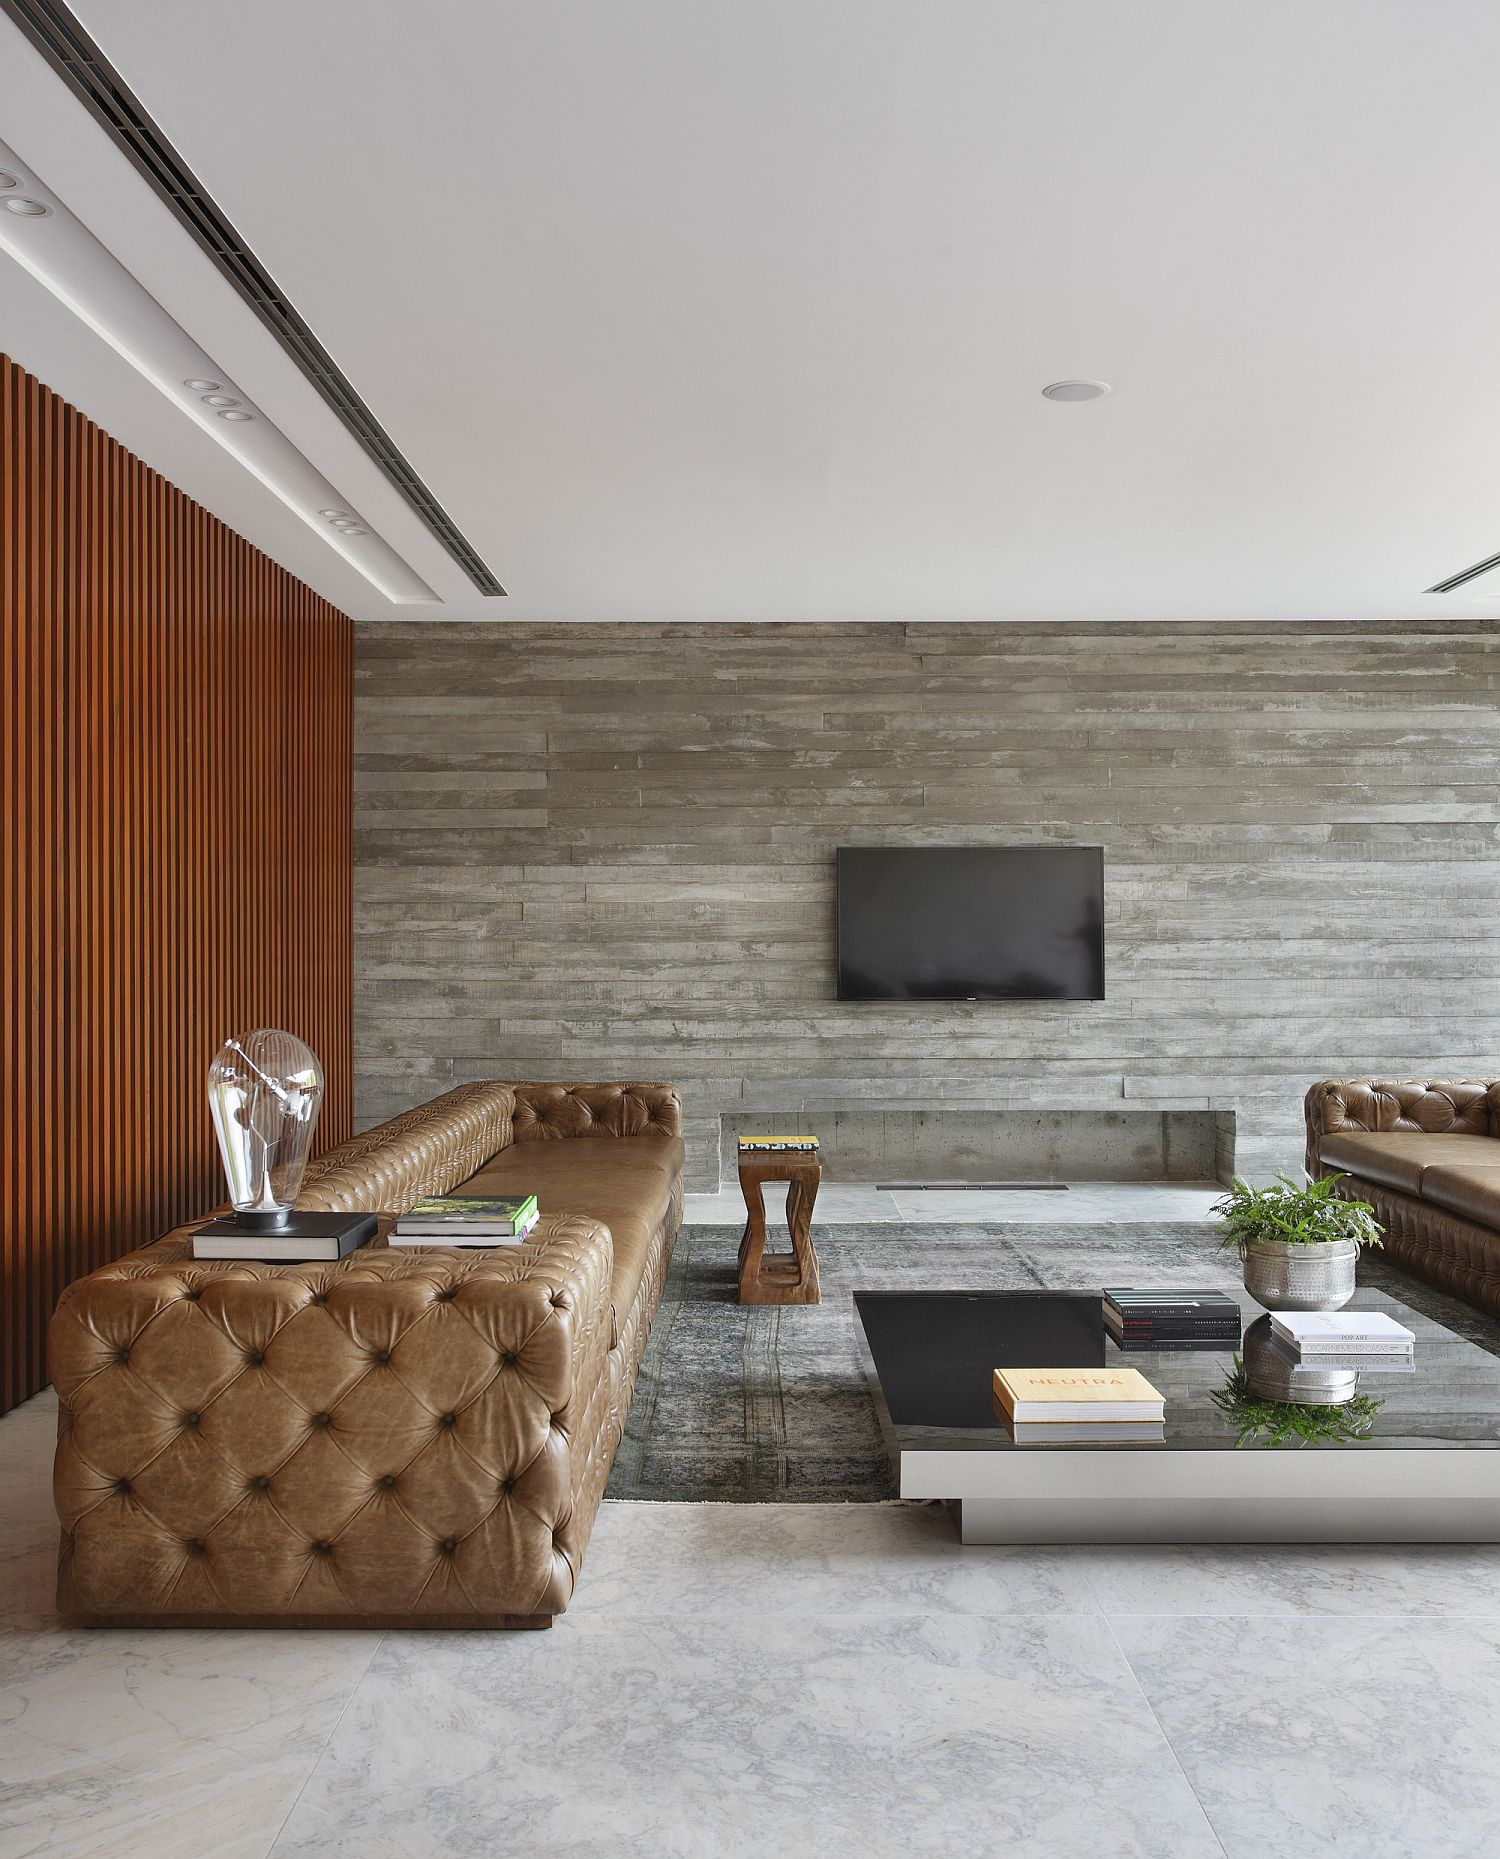 Cumaru wood and concrete give the interior an inviting, contemporary style